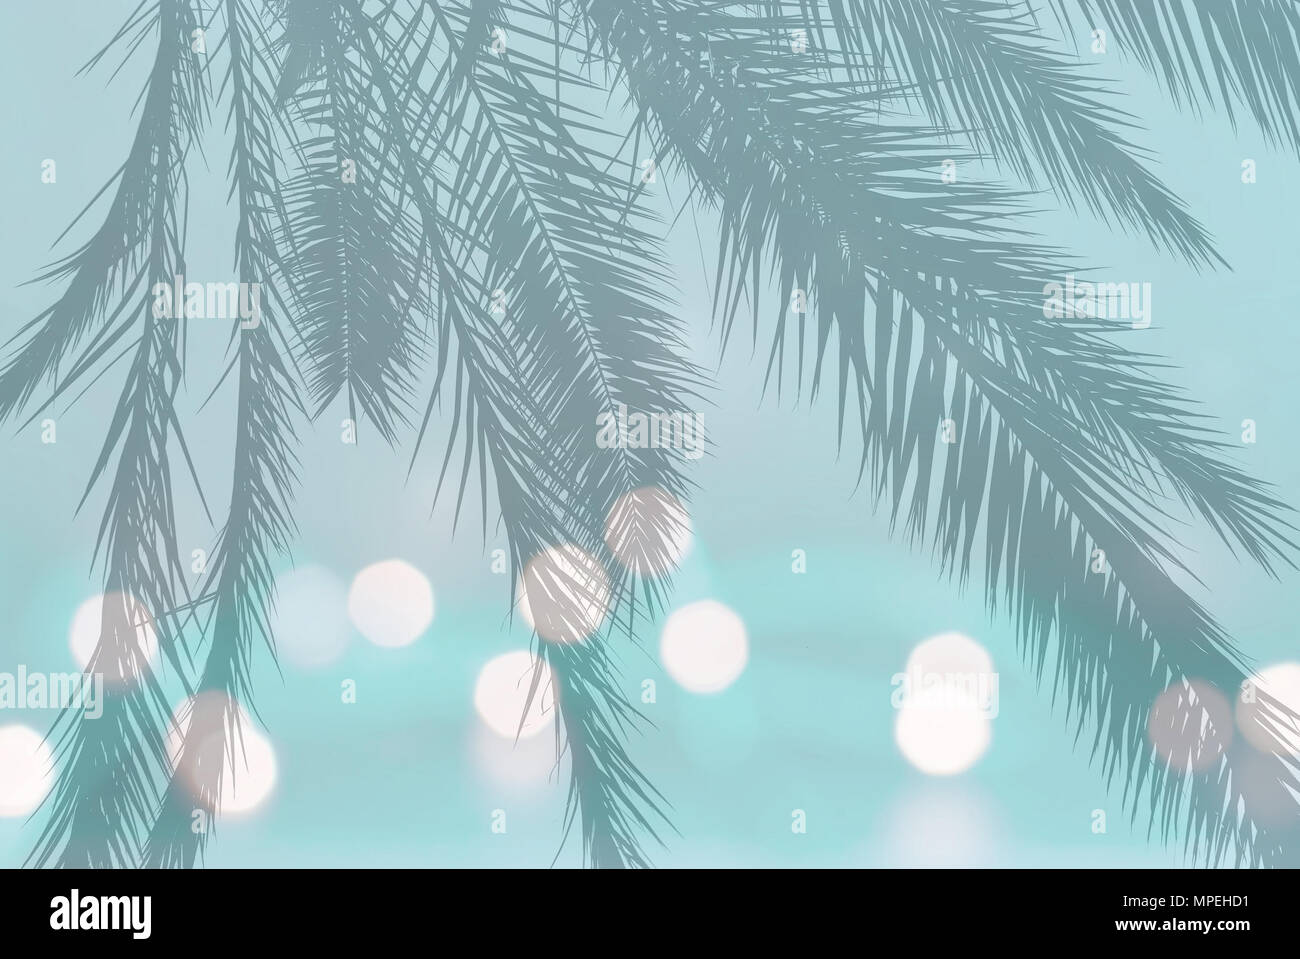 Palm leaf silhouette on festive blurry lights on soft teal turquoise vintage green background with copy space - Stock Image